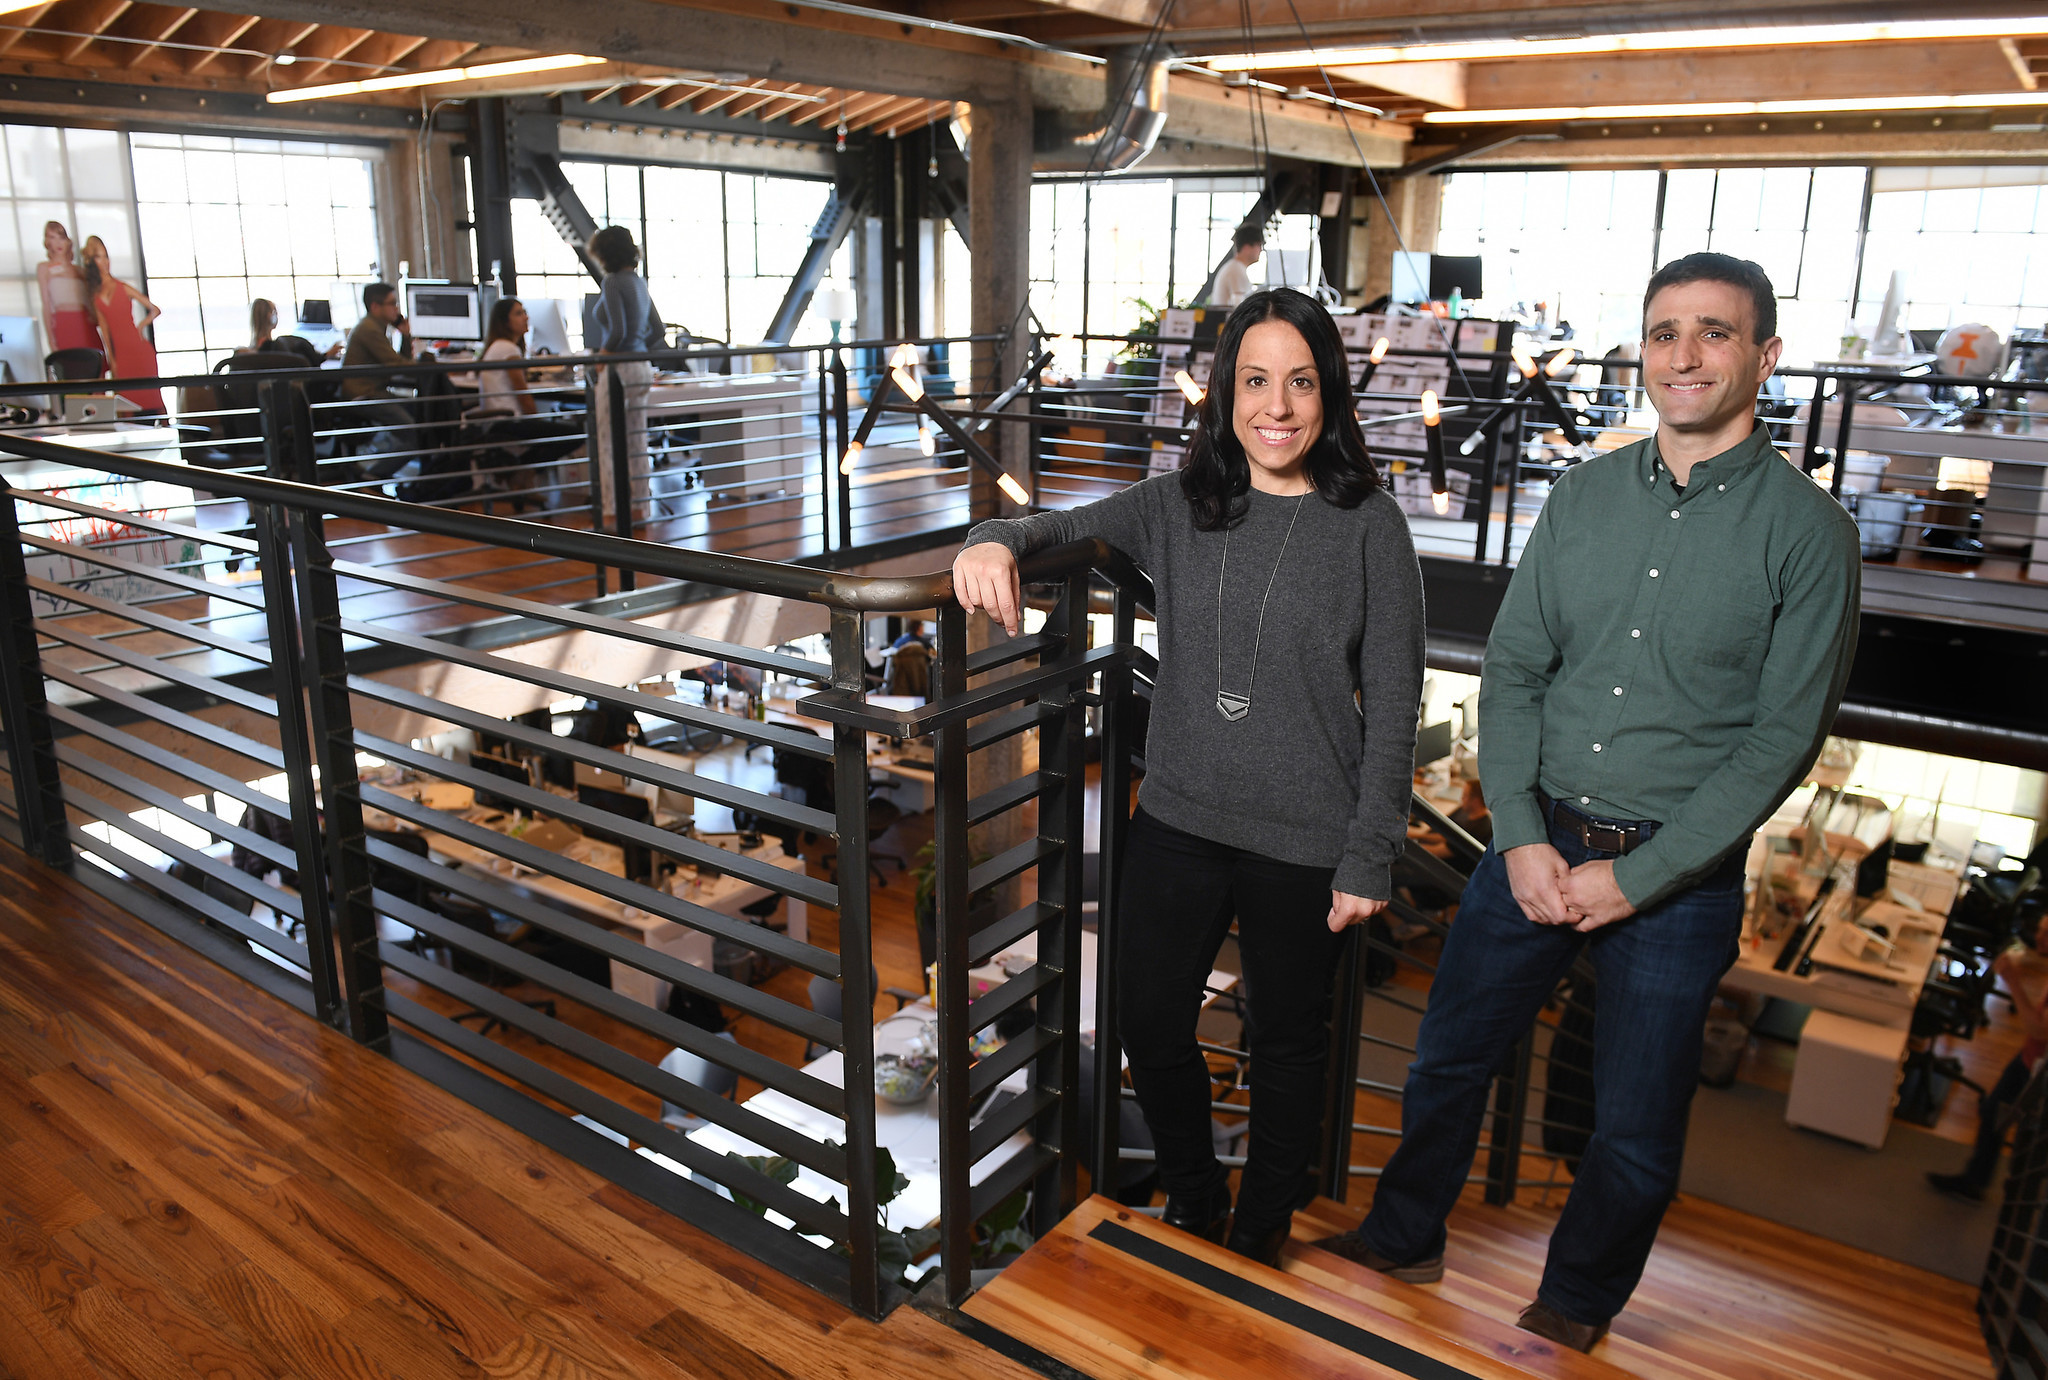 Katie Biber, center, former general counsel for Mitt Romney, and Steven Siger, right, who worked for President Obama, are now attorneys at Thumbtack in San Francisco.